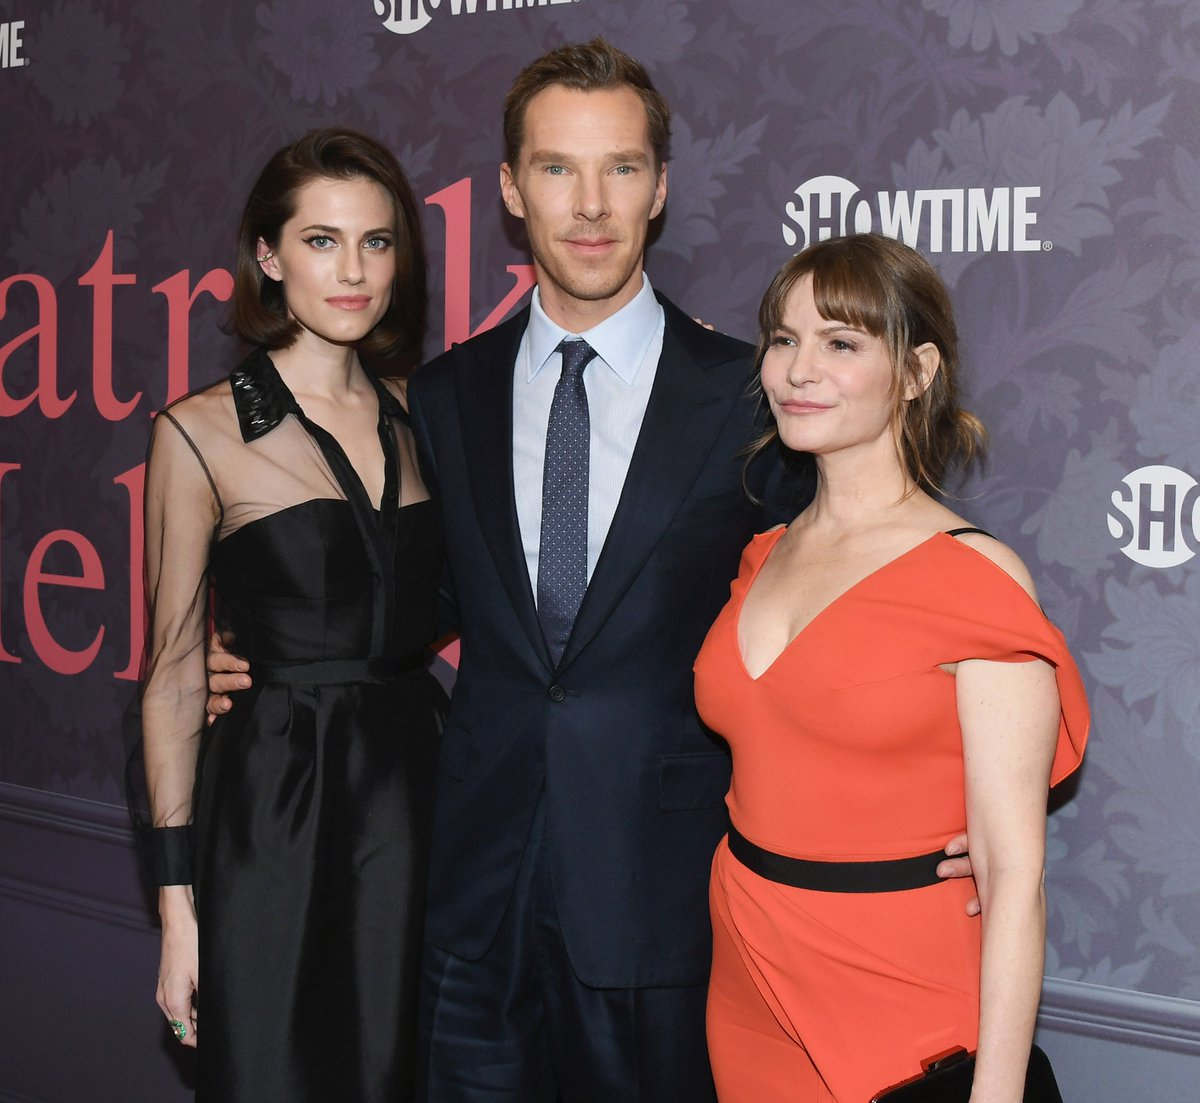 Benedict Cumberbatch attends Patrick Melrose TV premiere as Avengers: Infinity War is released – and jokes that Melrose is 'bigger' https://t.co/hhtjOERCNo